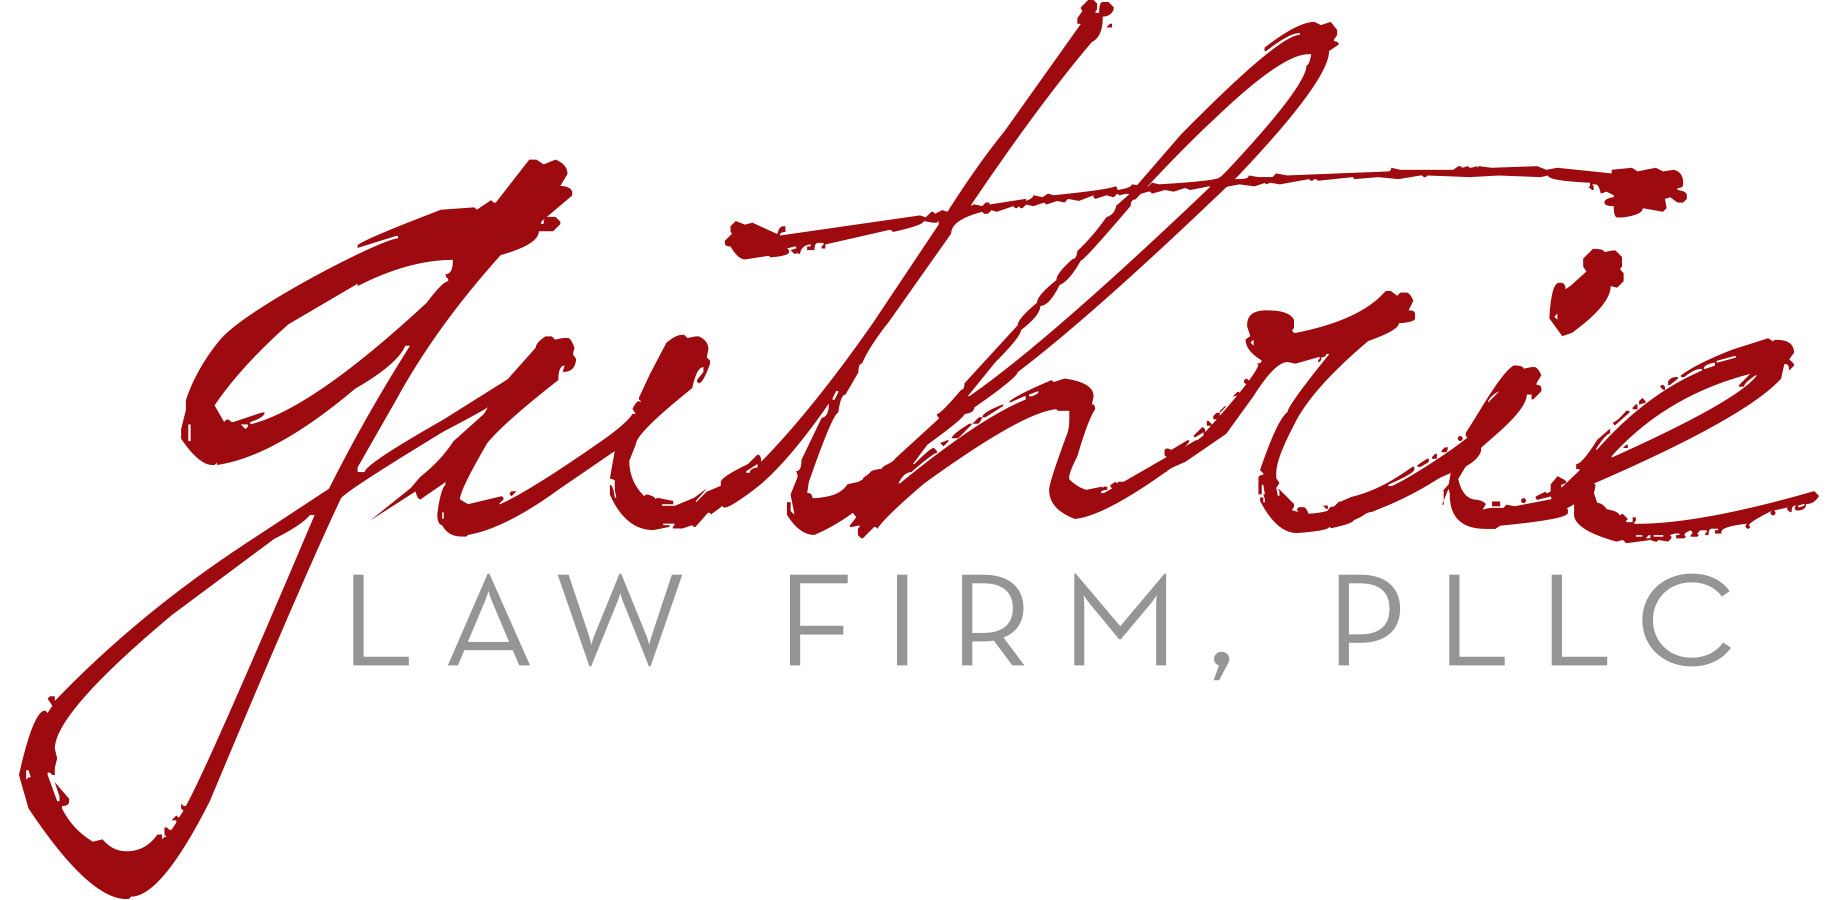 Guthrie Law Firm PLLC